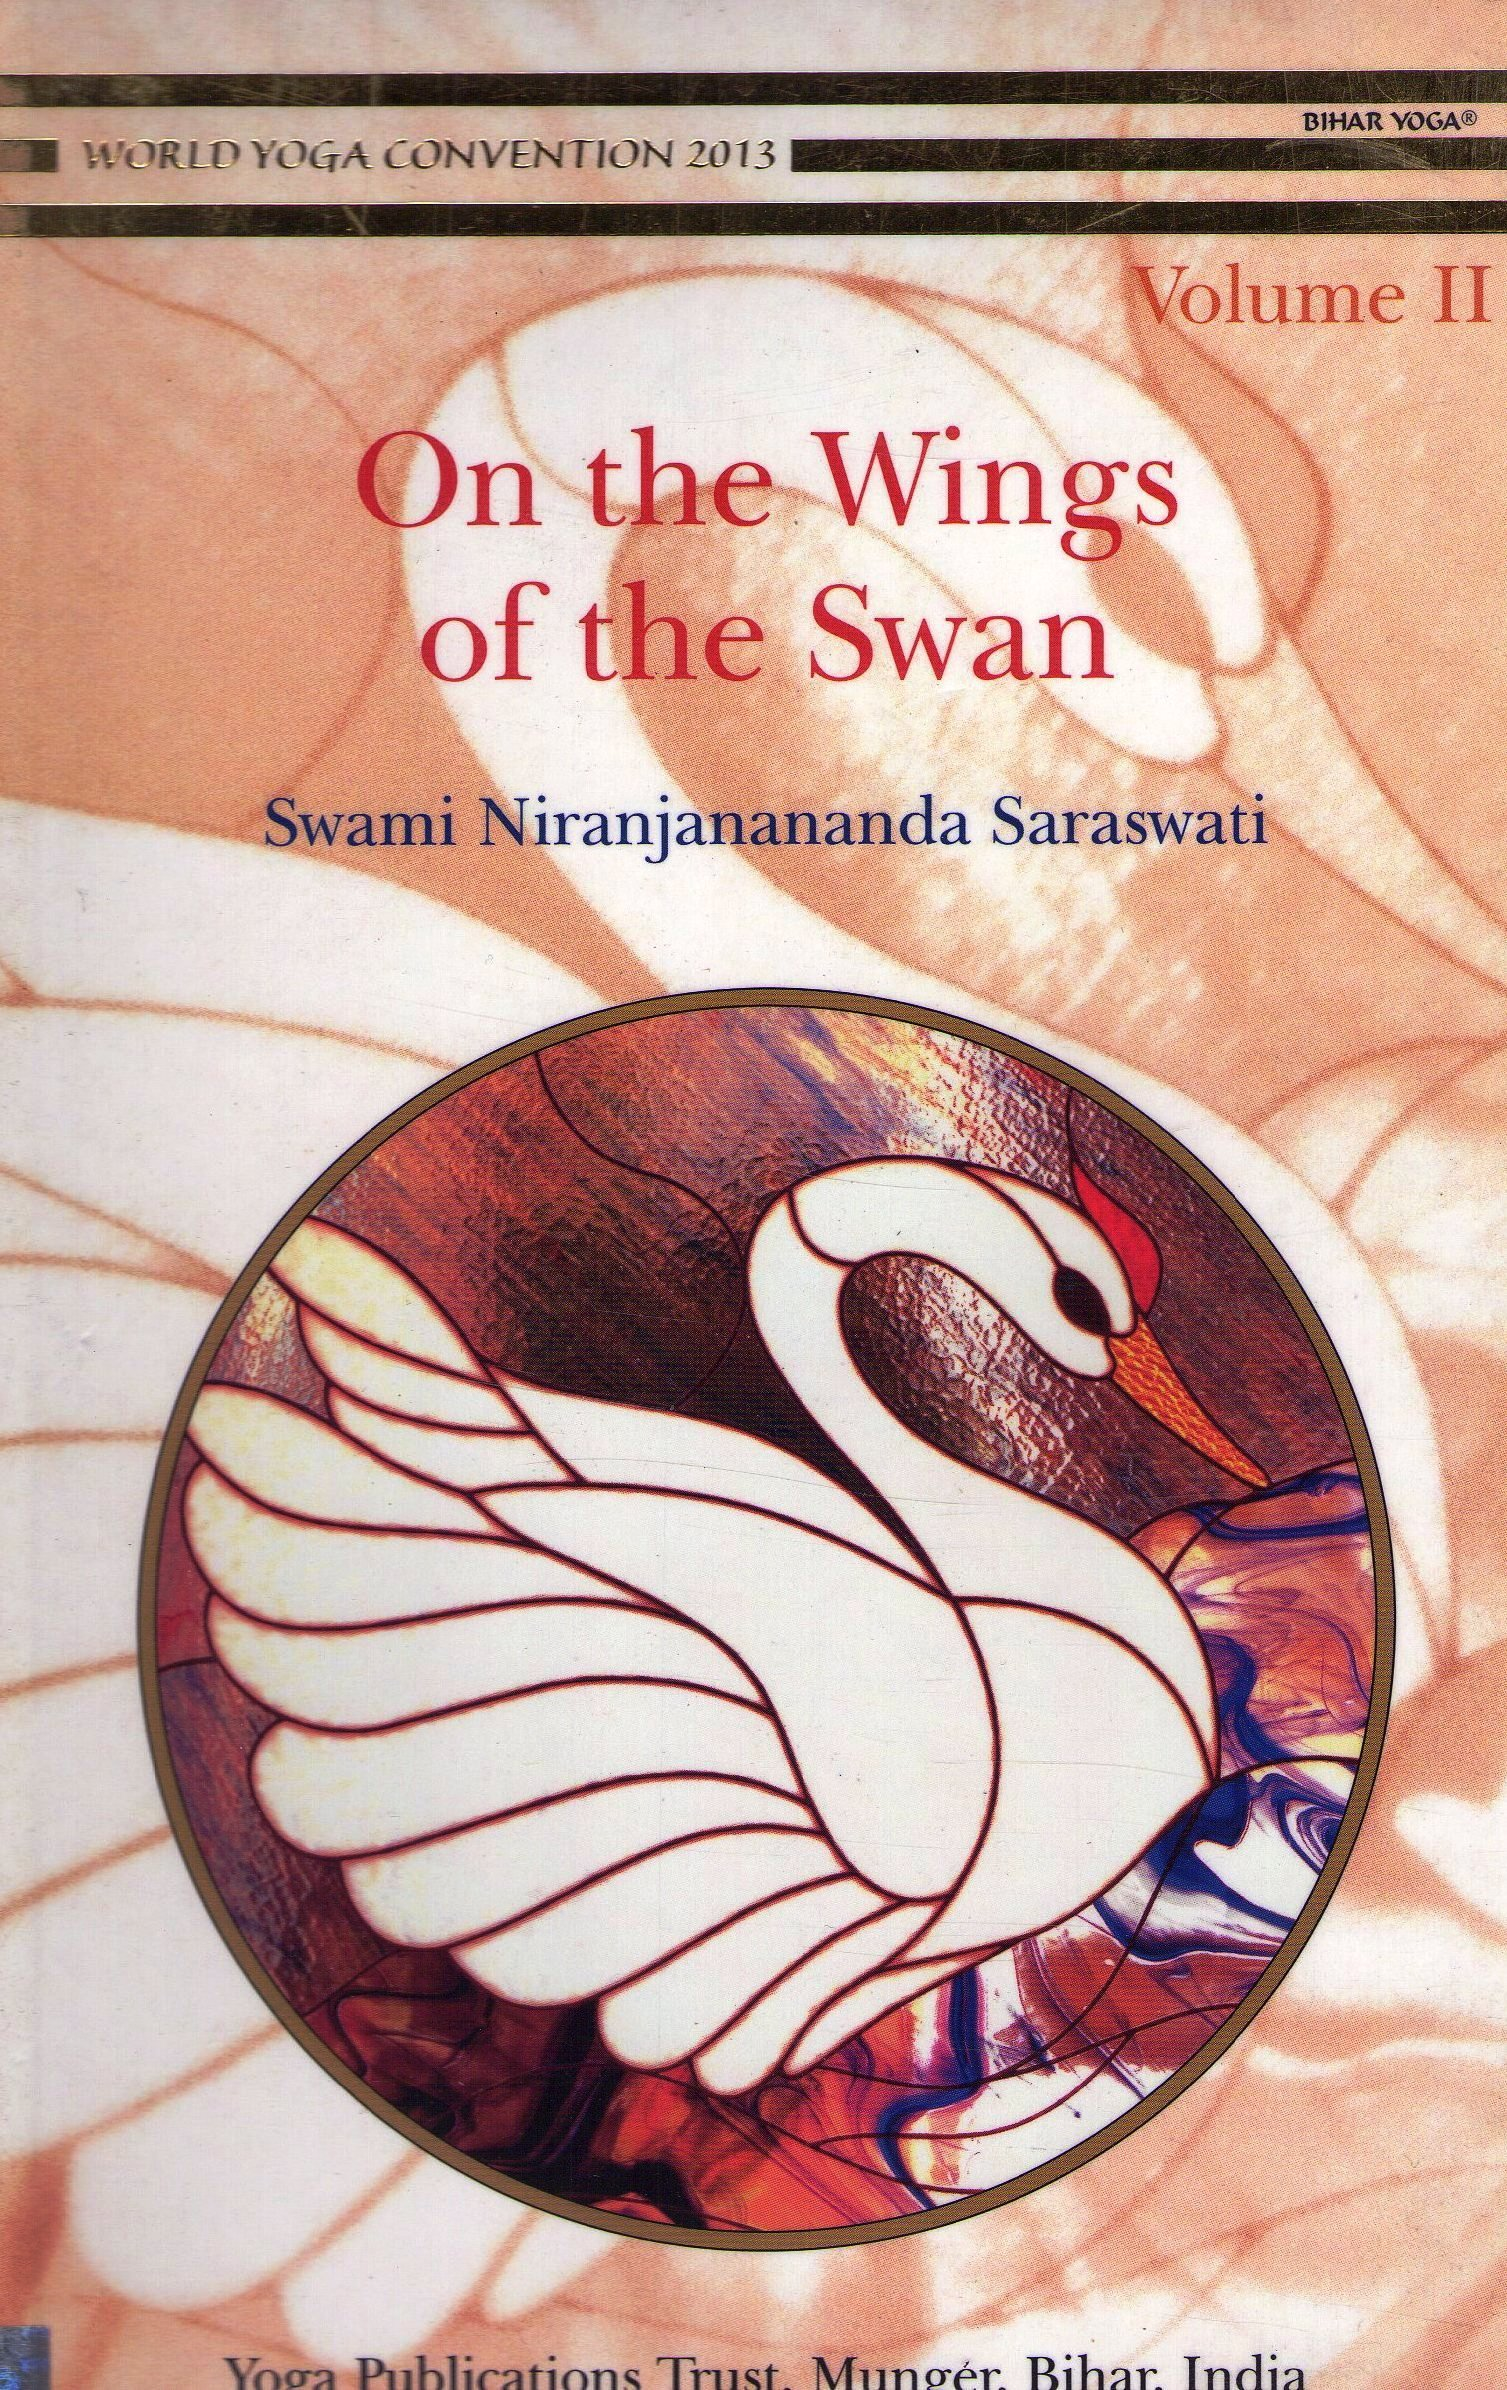 On the Wings of the Swan Volume I I